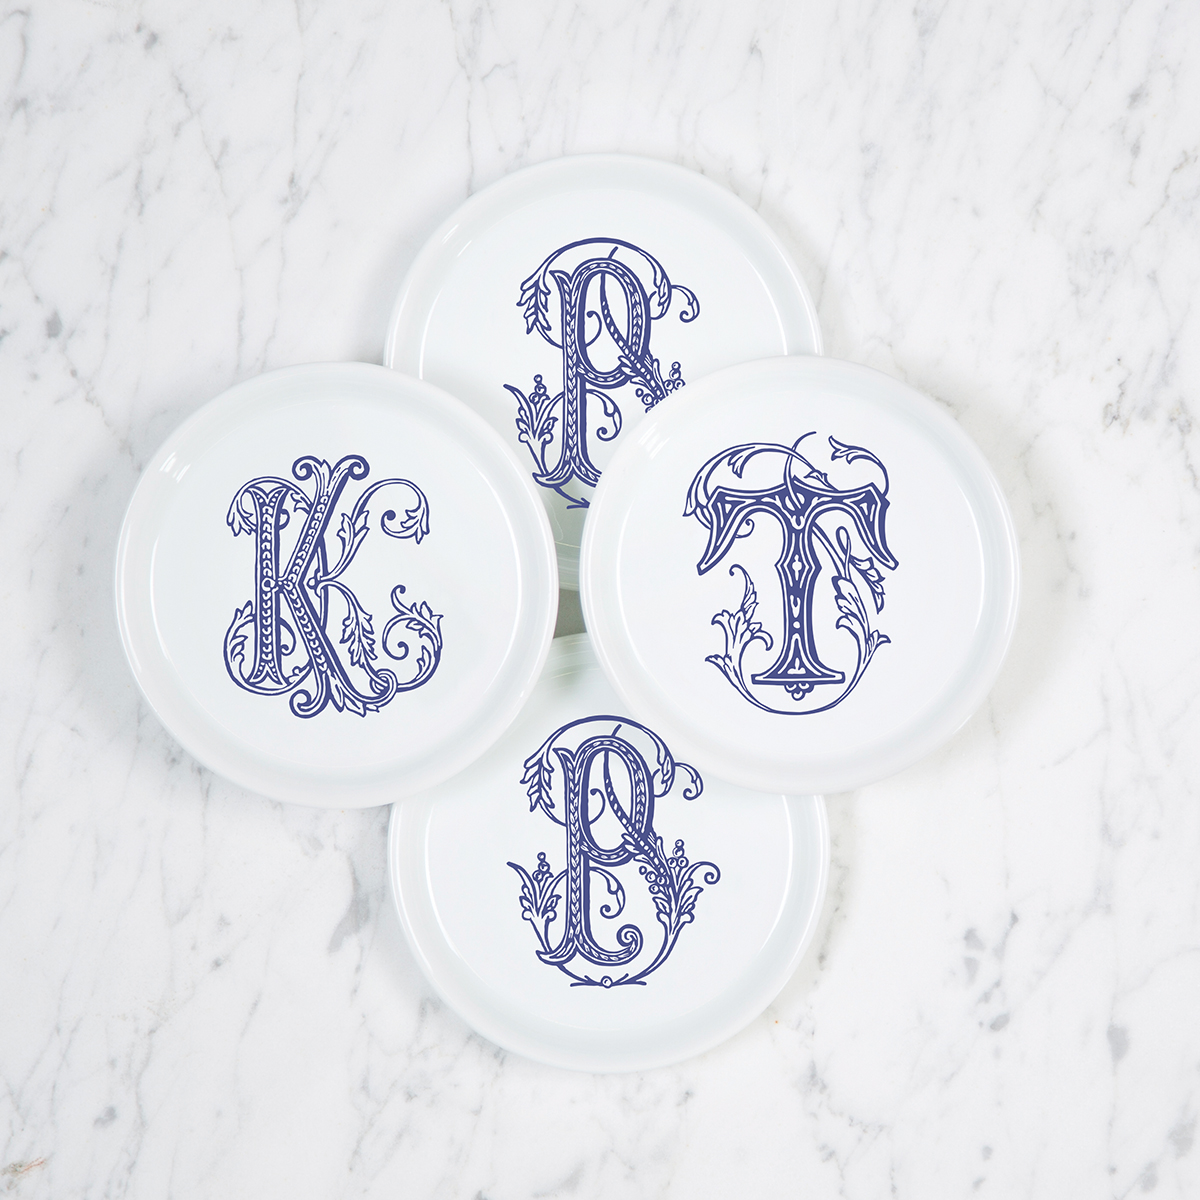 A beautiful addition to adorn your tablescapes with when entertaining and to your dinnerware collection. They make the perfect small gift for your wedding registry. The navy couture is such a classic. | Sasha Nicholas's white porcelain coasters